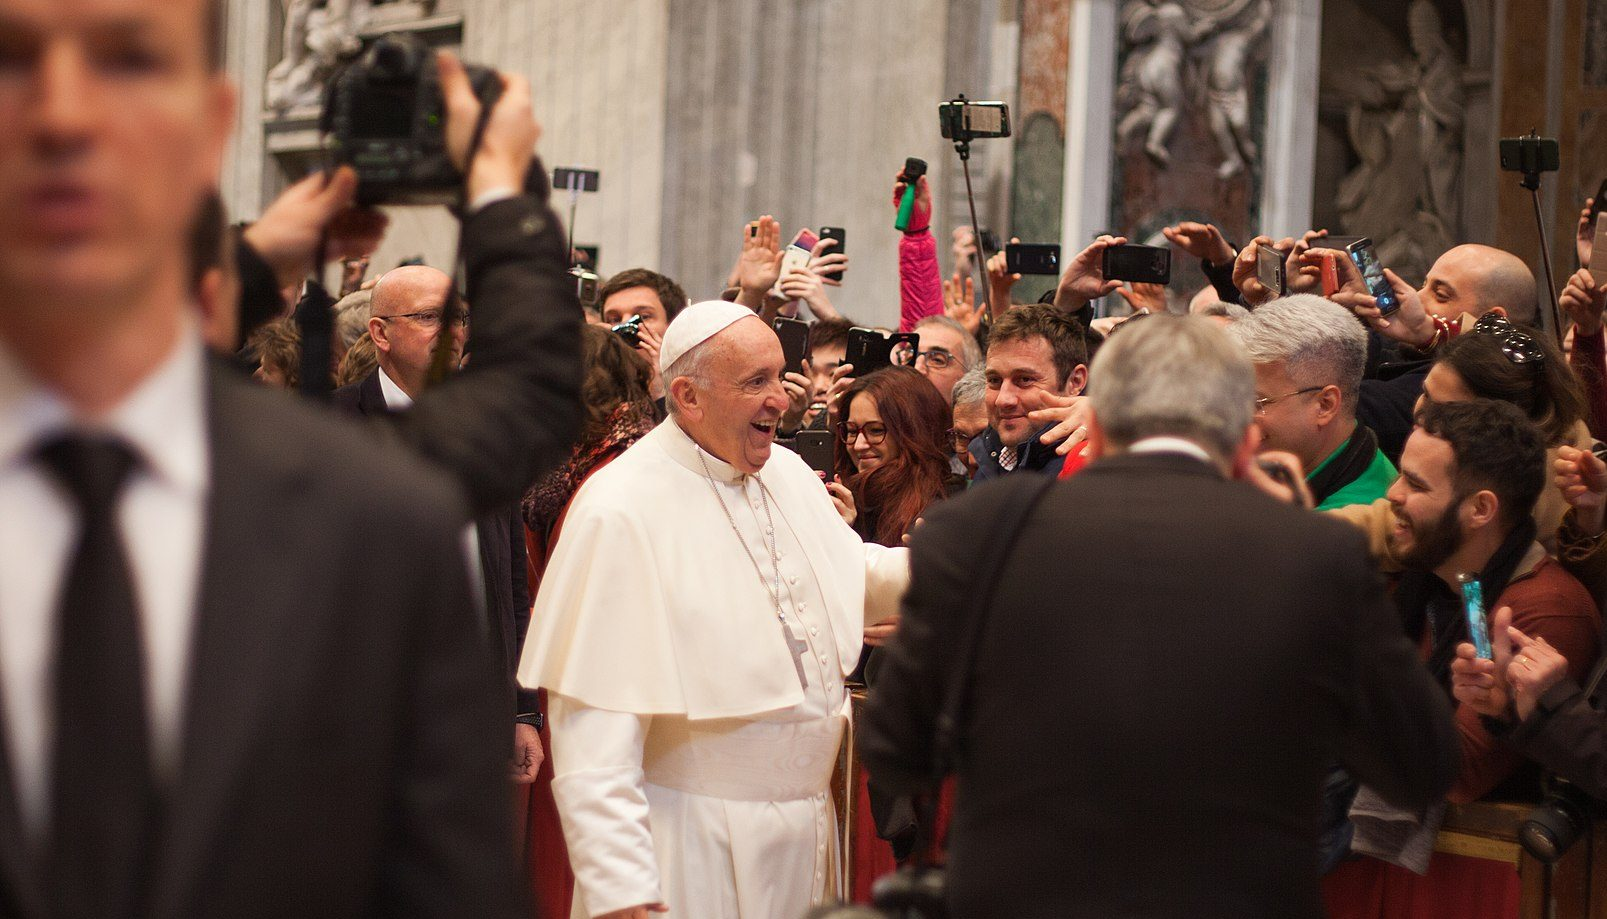 Pope Francis and his vision of fraternity